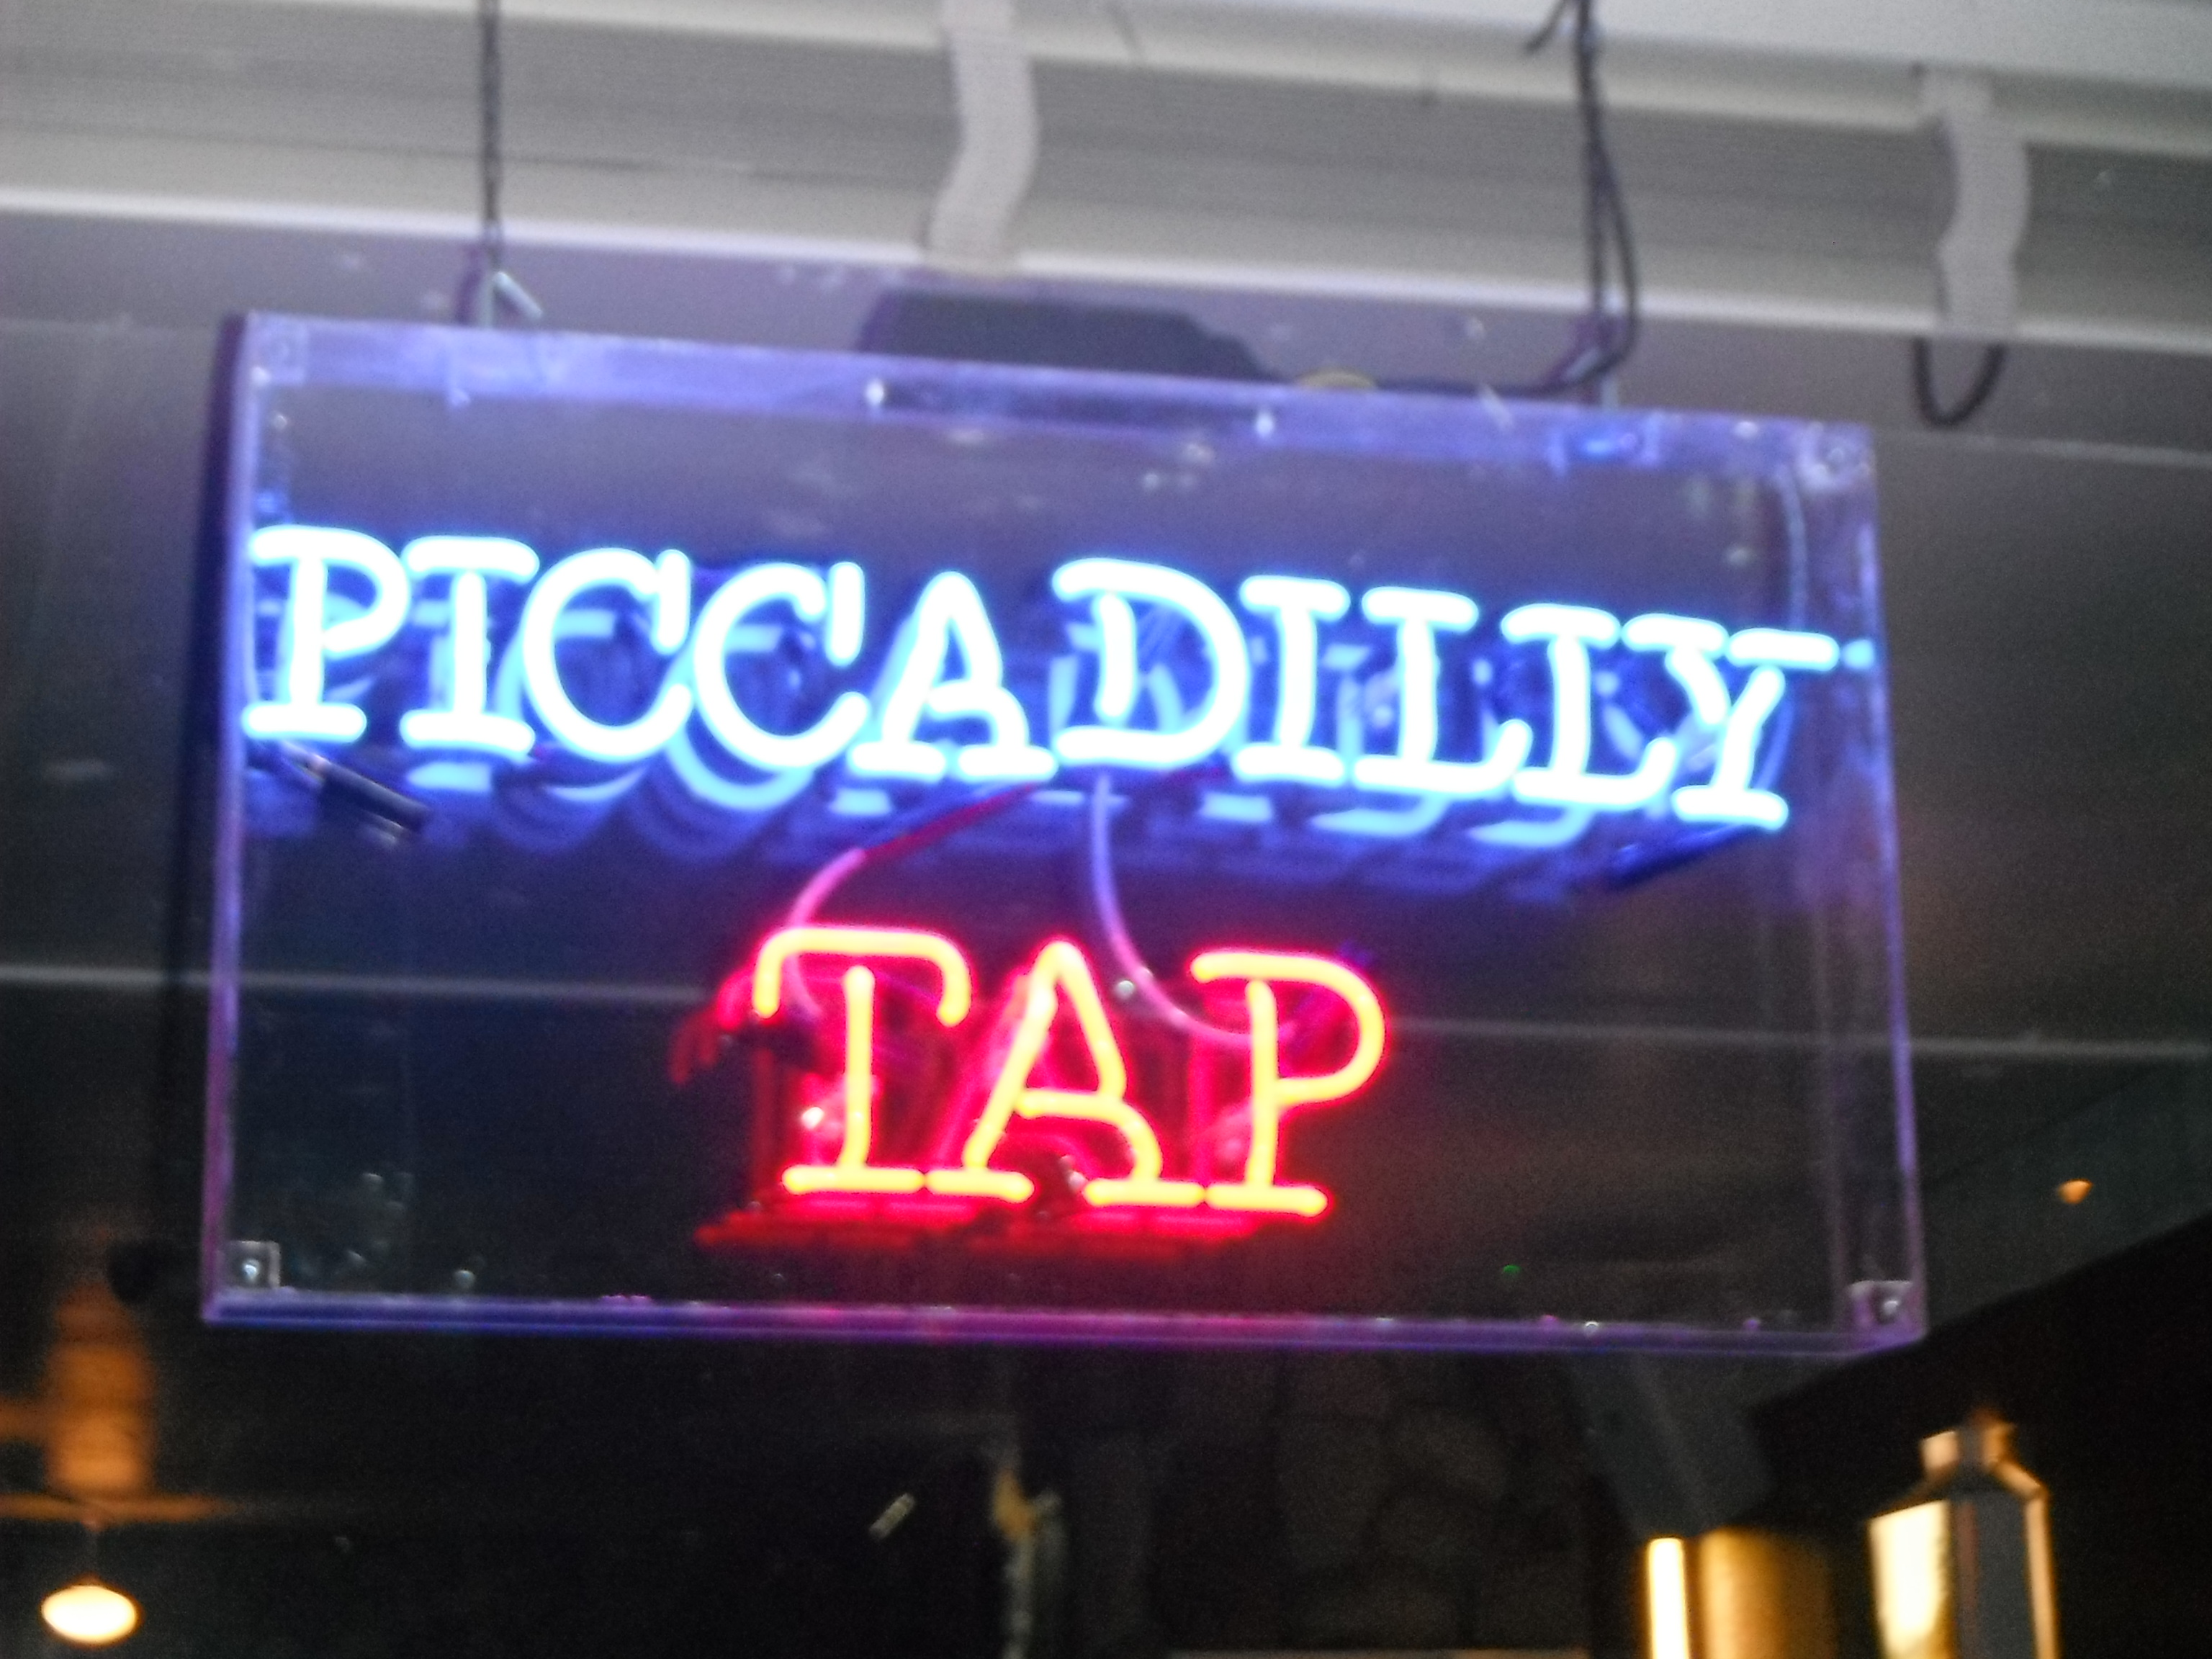 Photo taken by me – the Piccadilly Tap neon pub sign